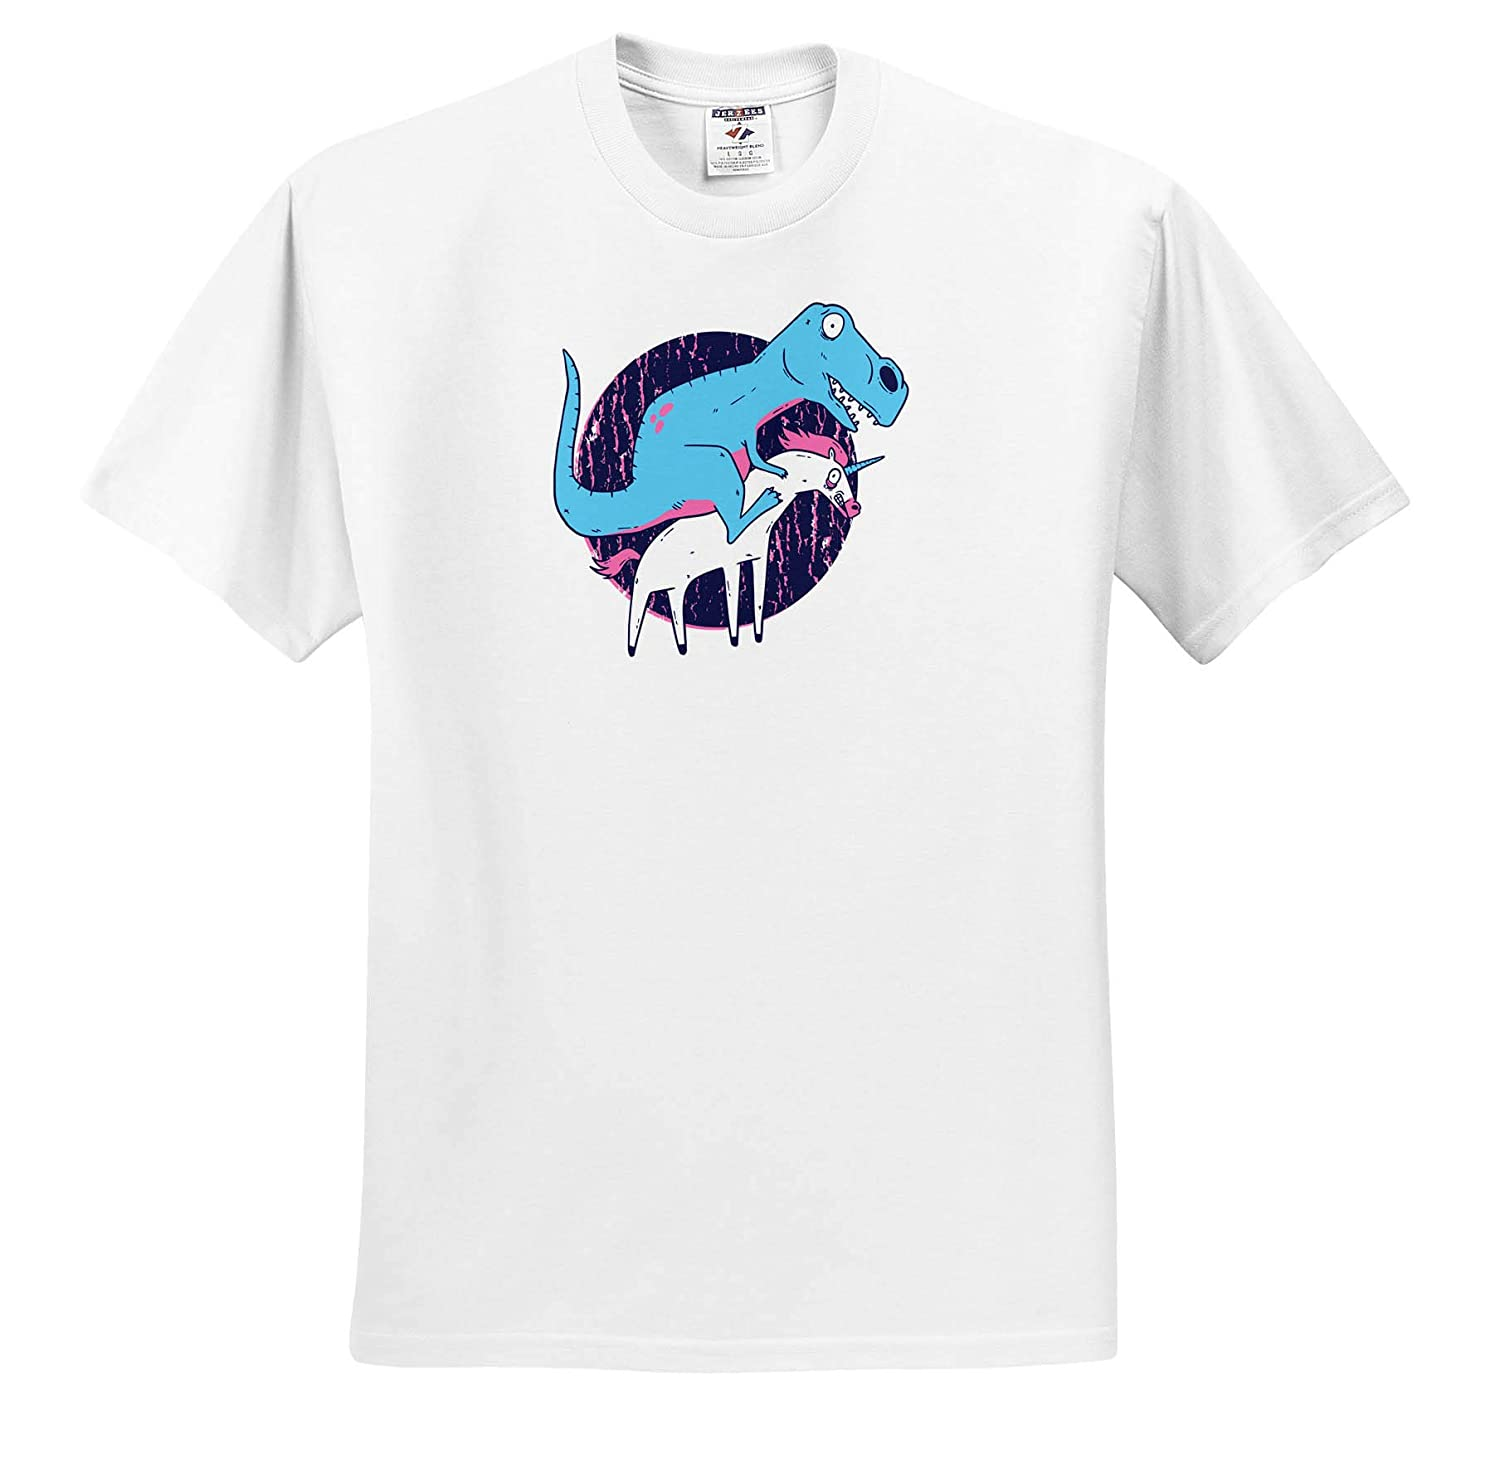 Adult T-Shirt XL 3dRose Sven Herkenrath Animal ts/_320100 Blue Dinosaur T-Rex Riding Unicorn Horse Animal Reptile